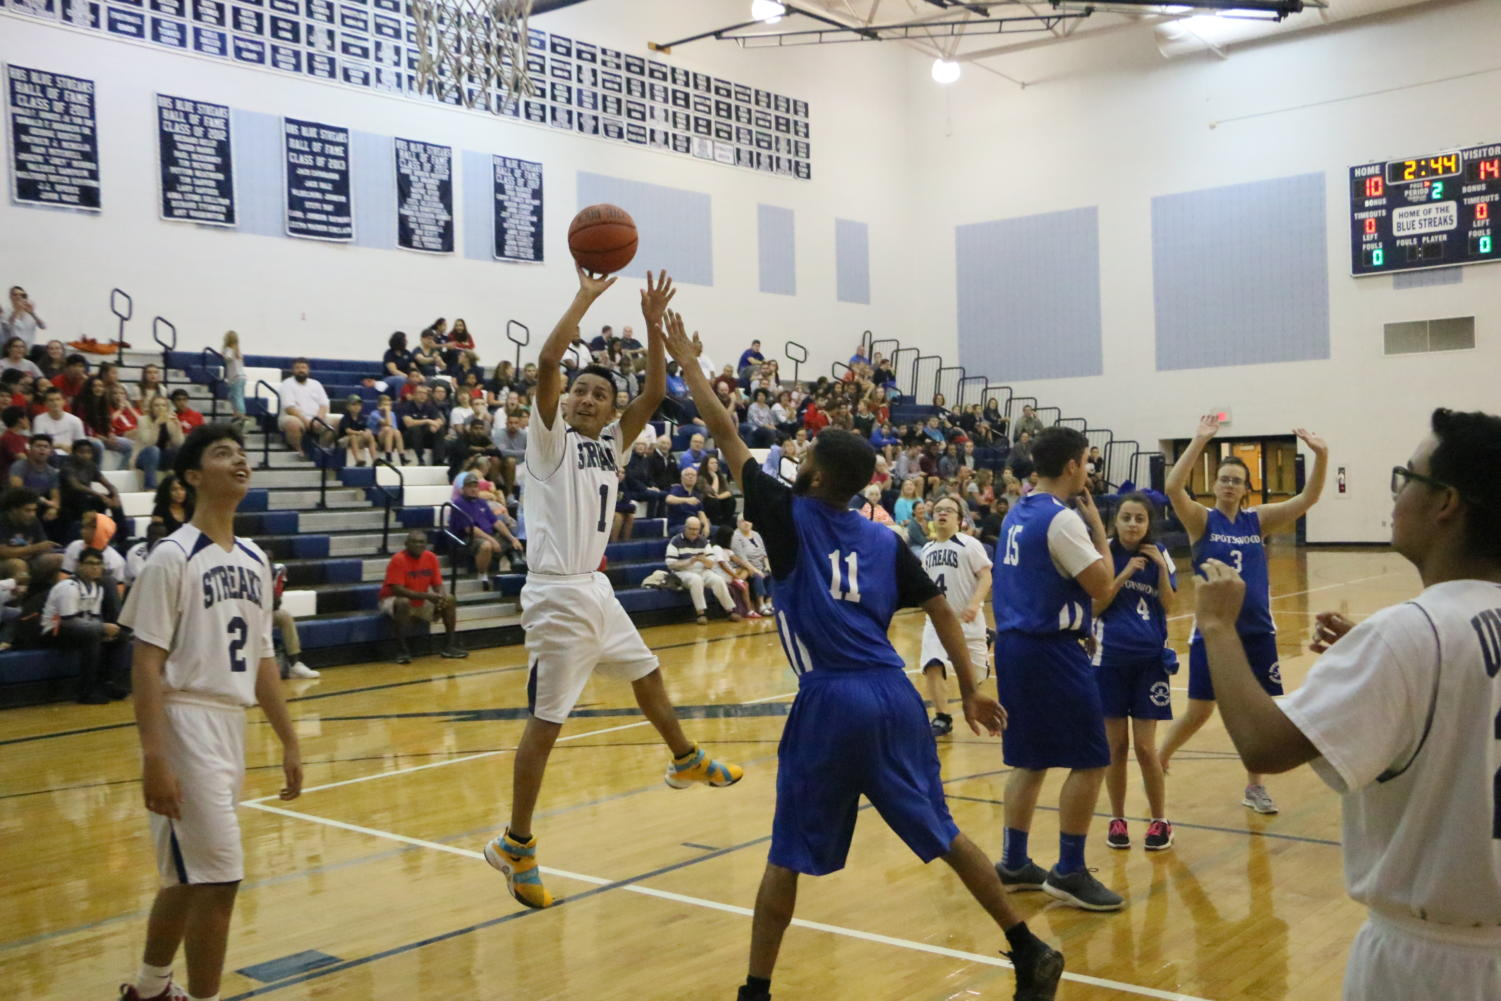 Harrisonburg puts up a shot against Spotswood. To see more photos from the game, check back in a few days.